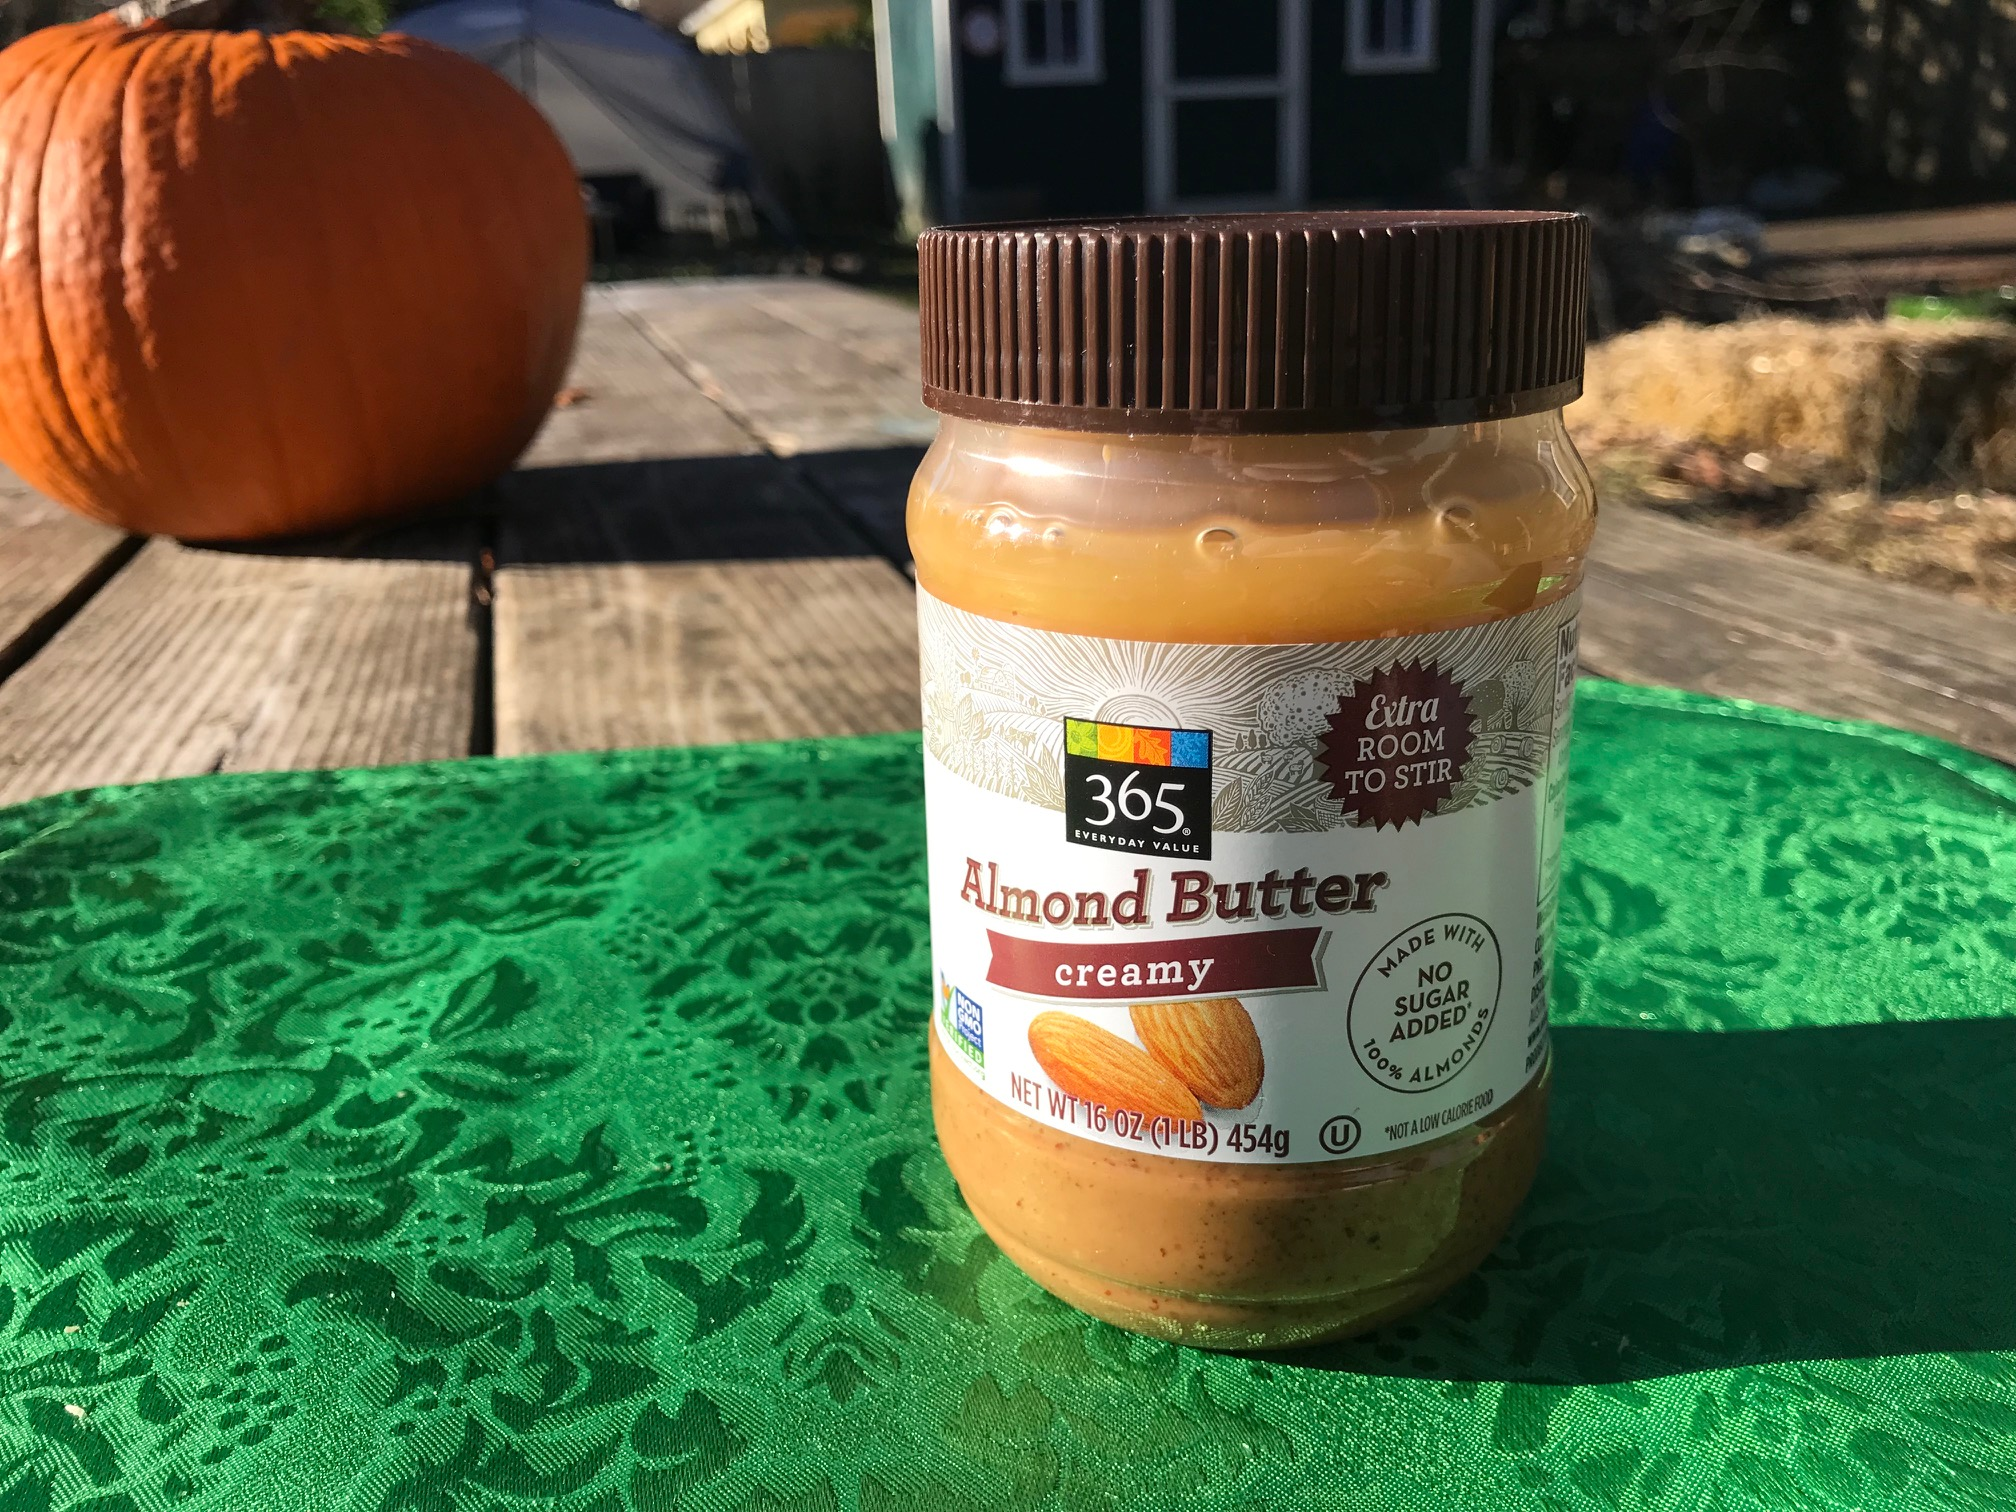 "Antimony (Sb) Found in Plastic Jar for ""365"" Whole Foods Brand Almond Butter"